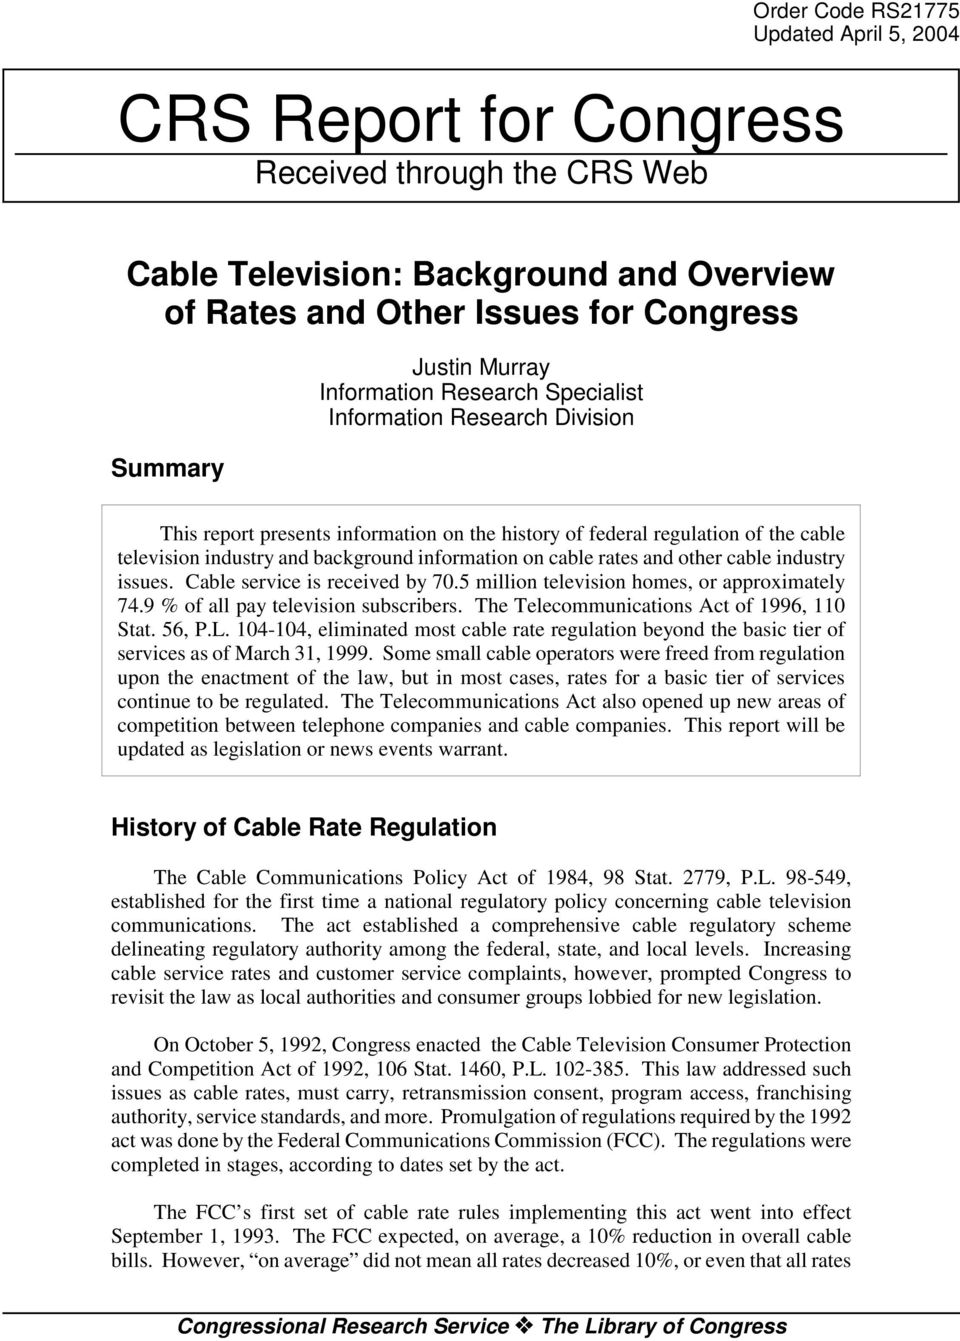 cable rates and other cable industry issues. Cable service is received by 70.5 million television homes, or approximately 74.9 % of all pay television subscribers.